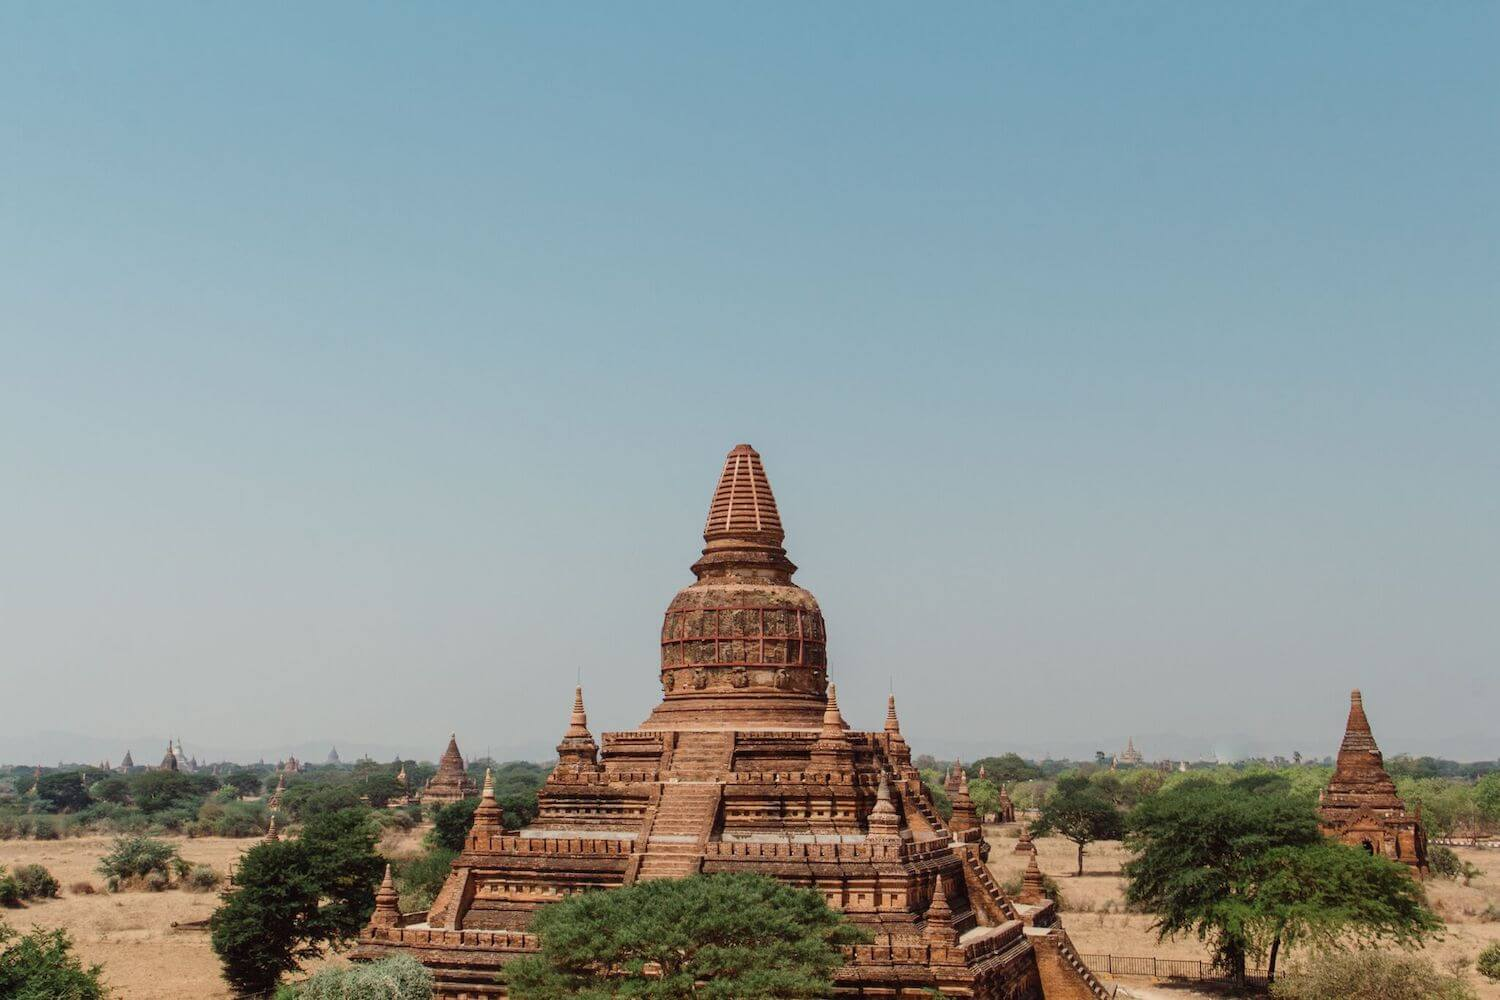 Best Myanmar Itinerary: Photo of an ancient red stone temple in Bagan Myanmar with many other temples in the distance. Photo taken by Ryan Brown of Lost Boy Memoirs, edited in Lightroom.